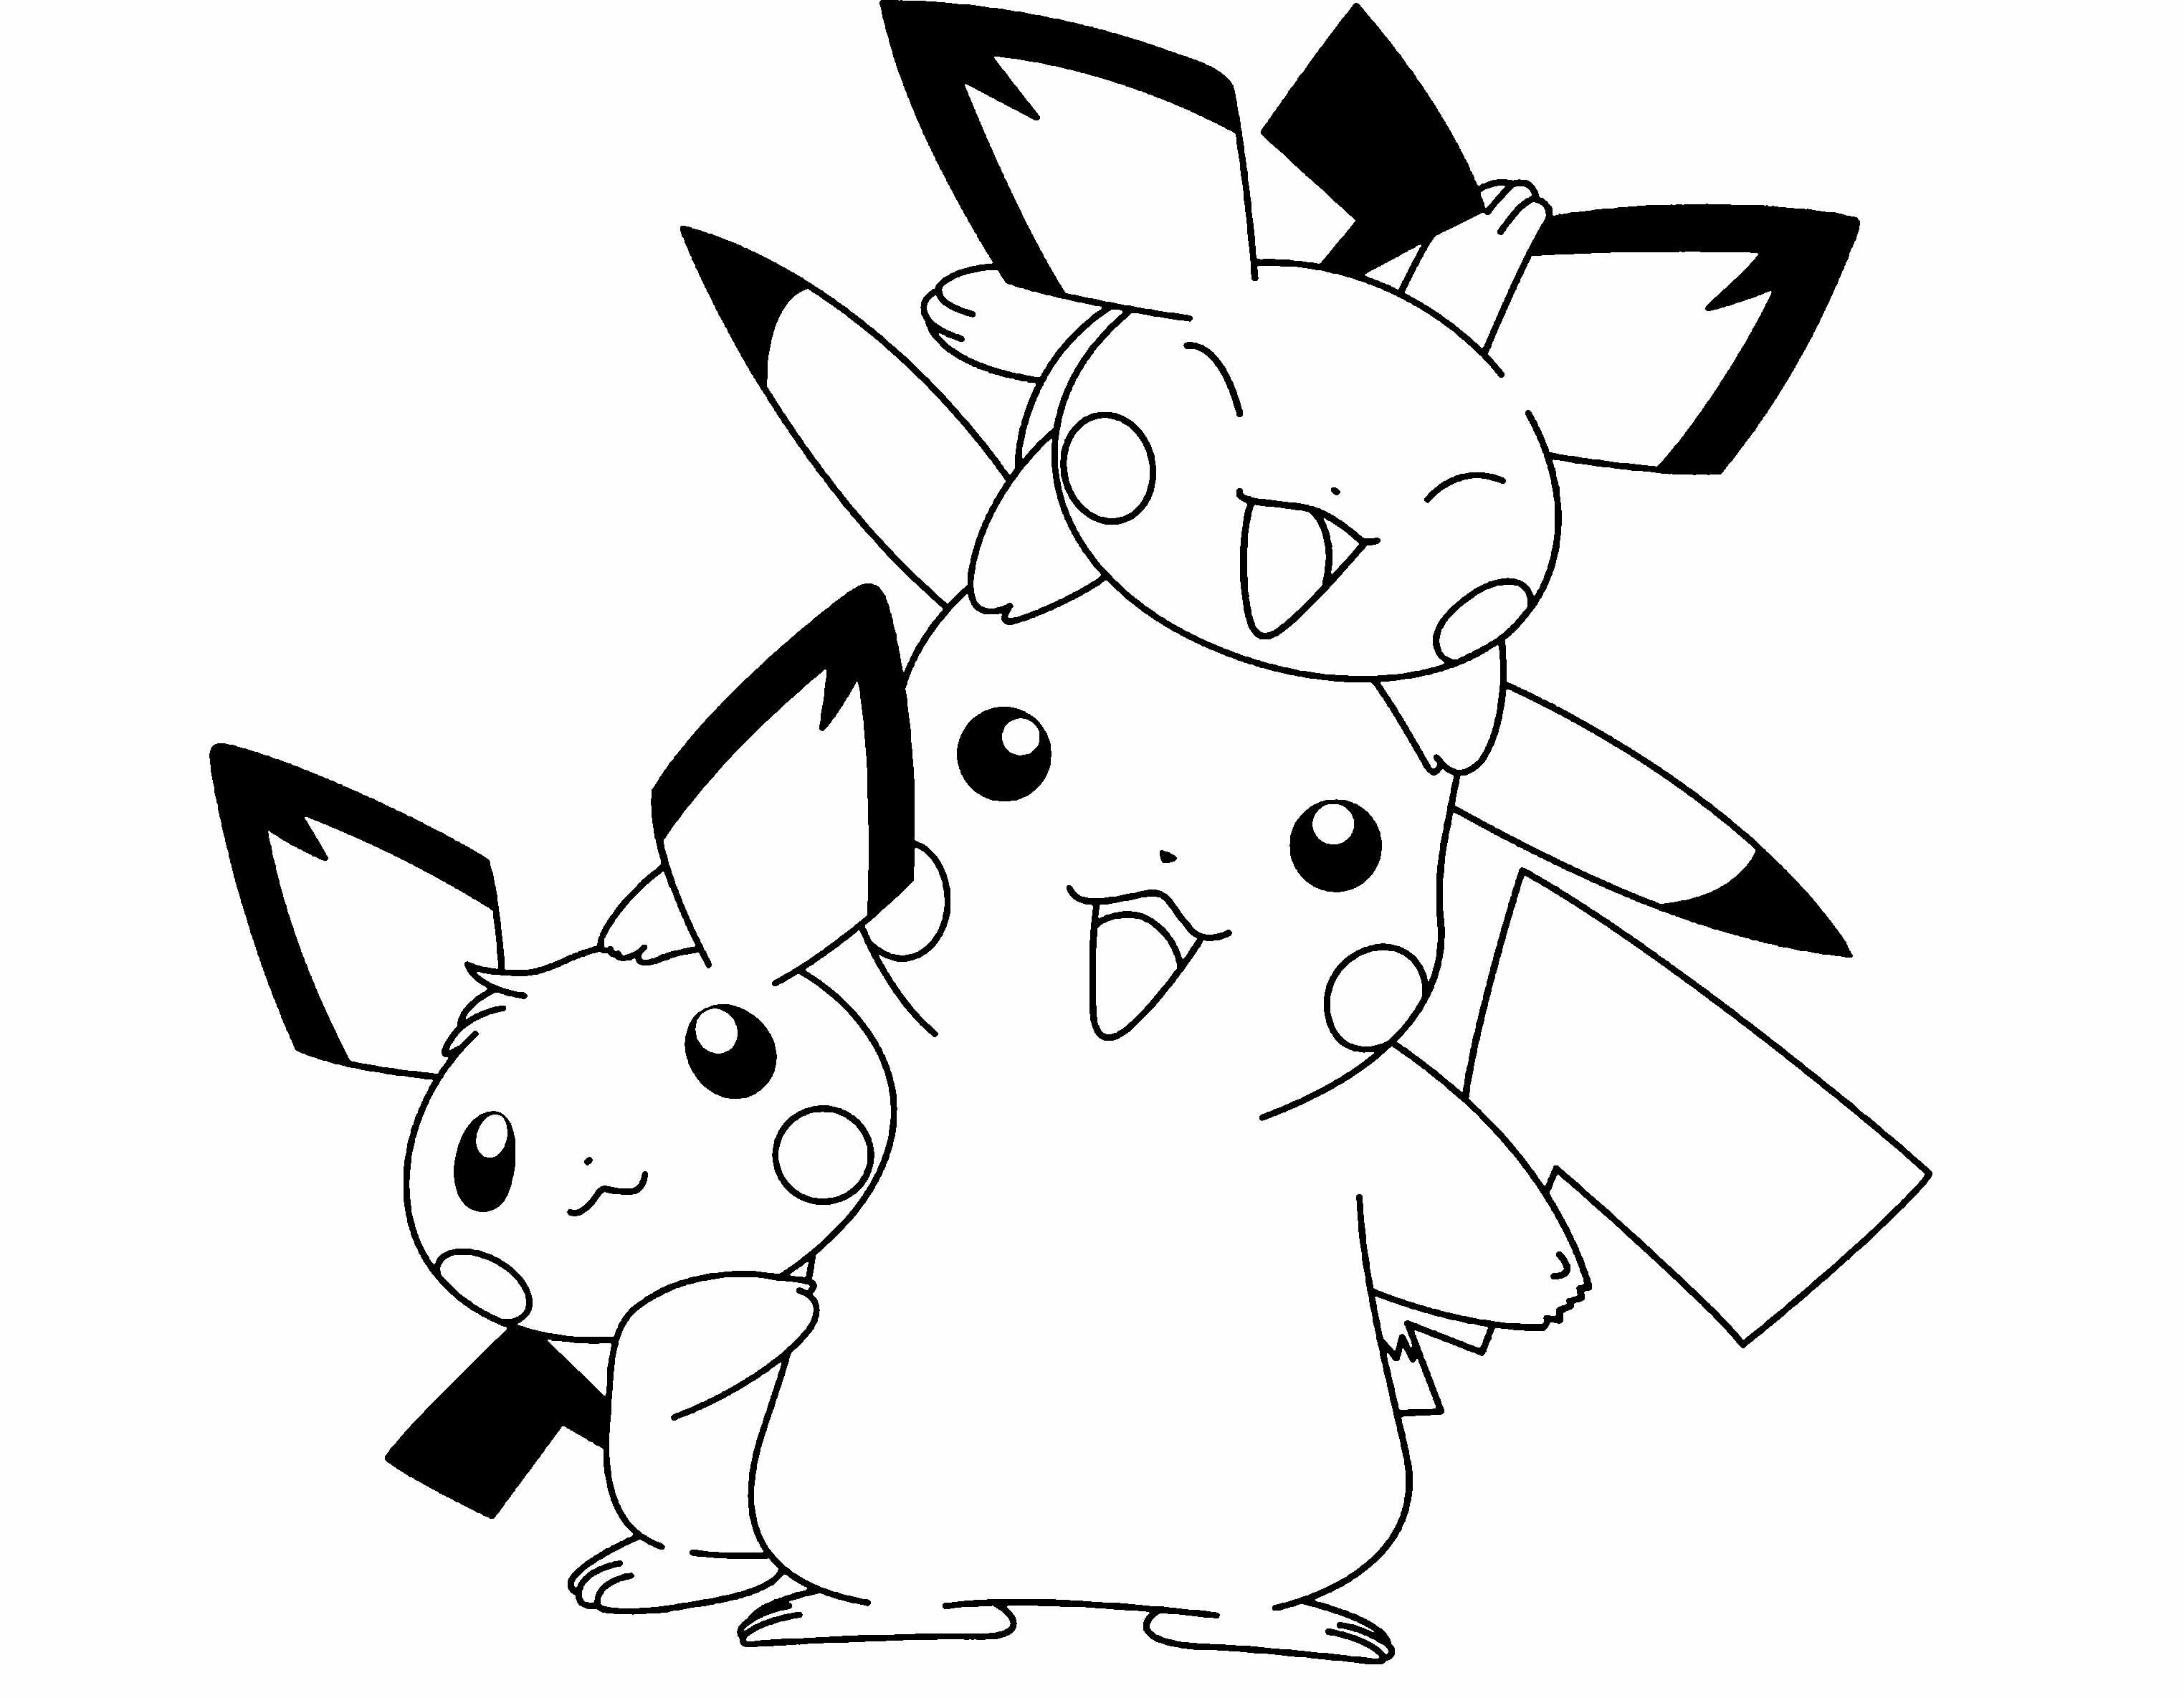 Coloring games of pokemon - Explore Cute Coloring Pages Coloring Book And More